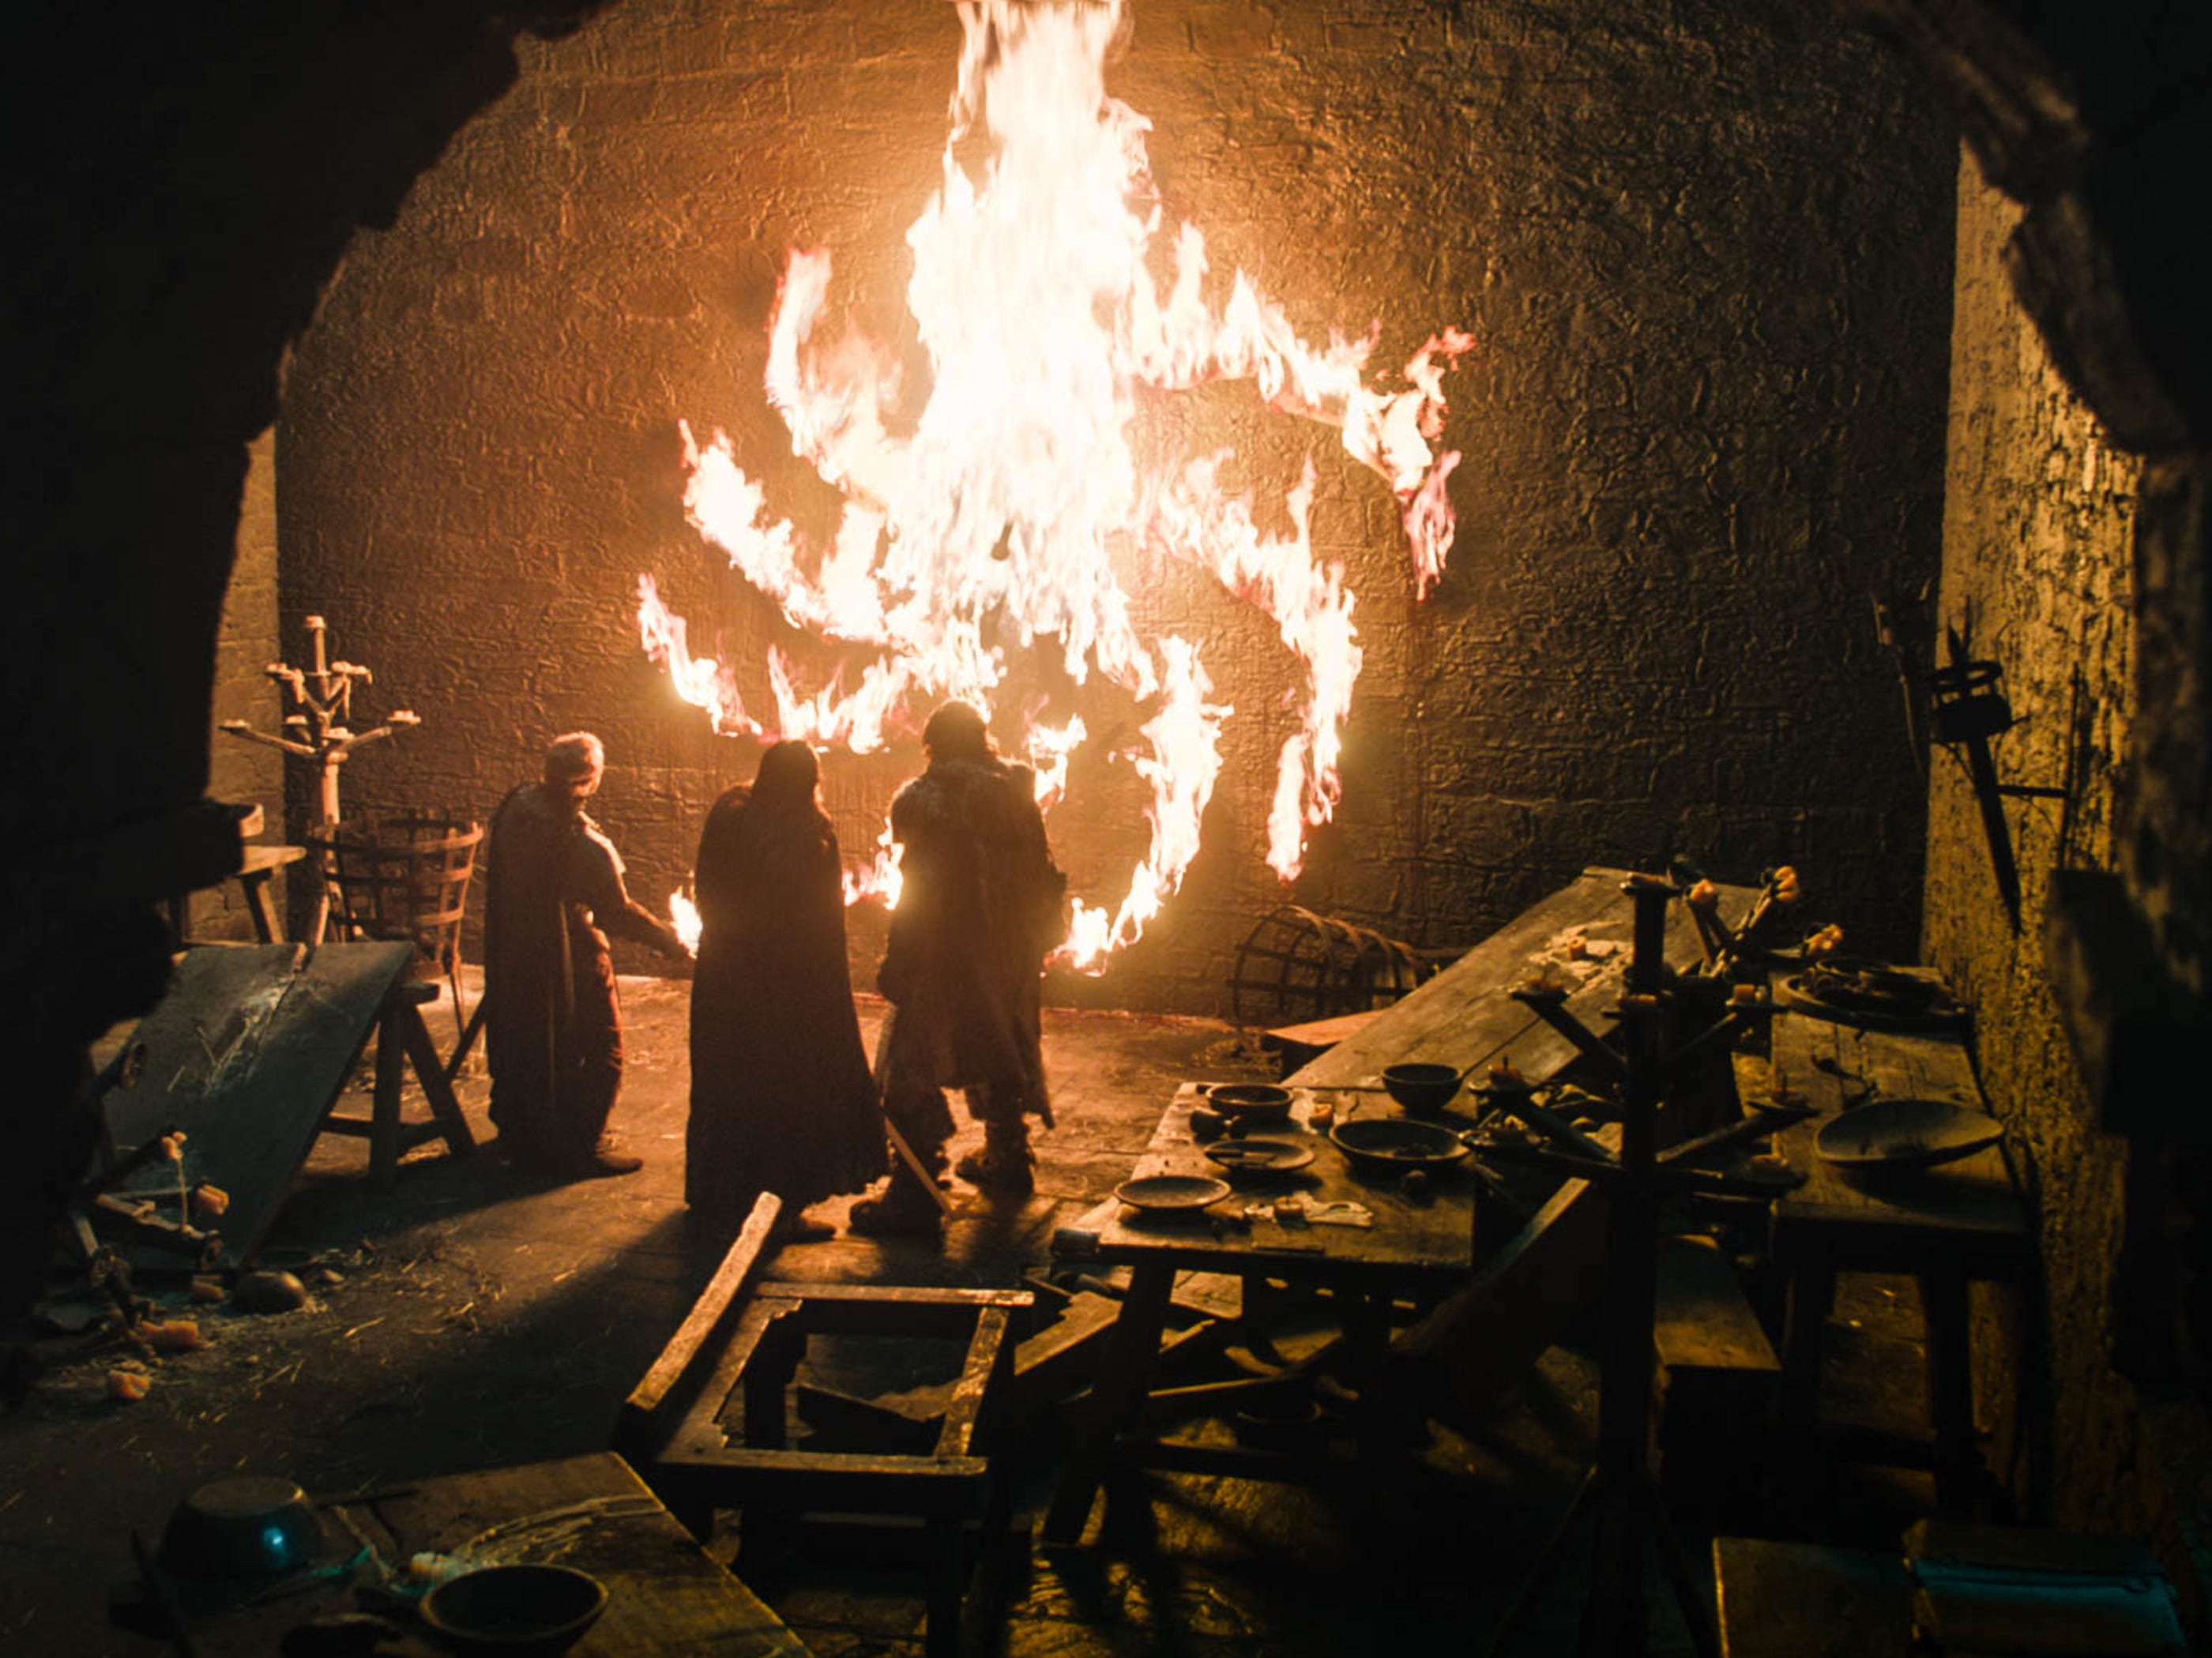 The Night King uses Ned Umber to send a message.